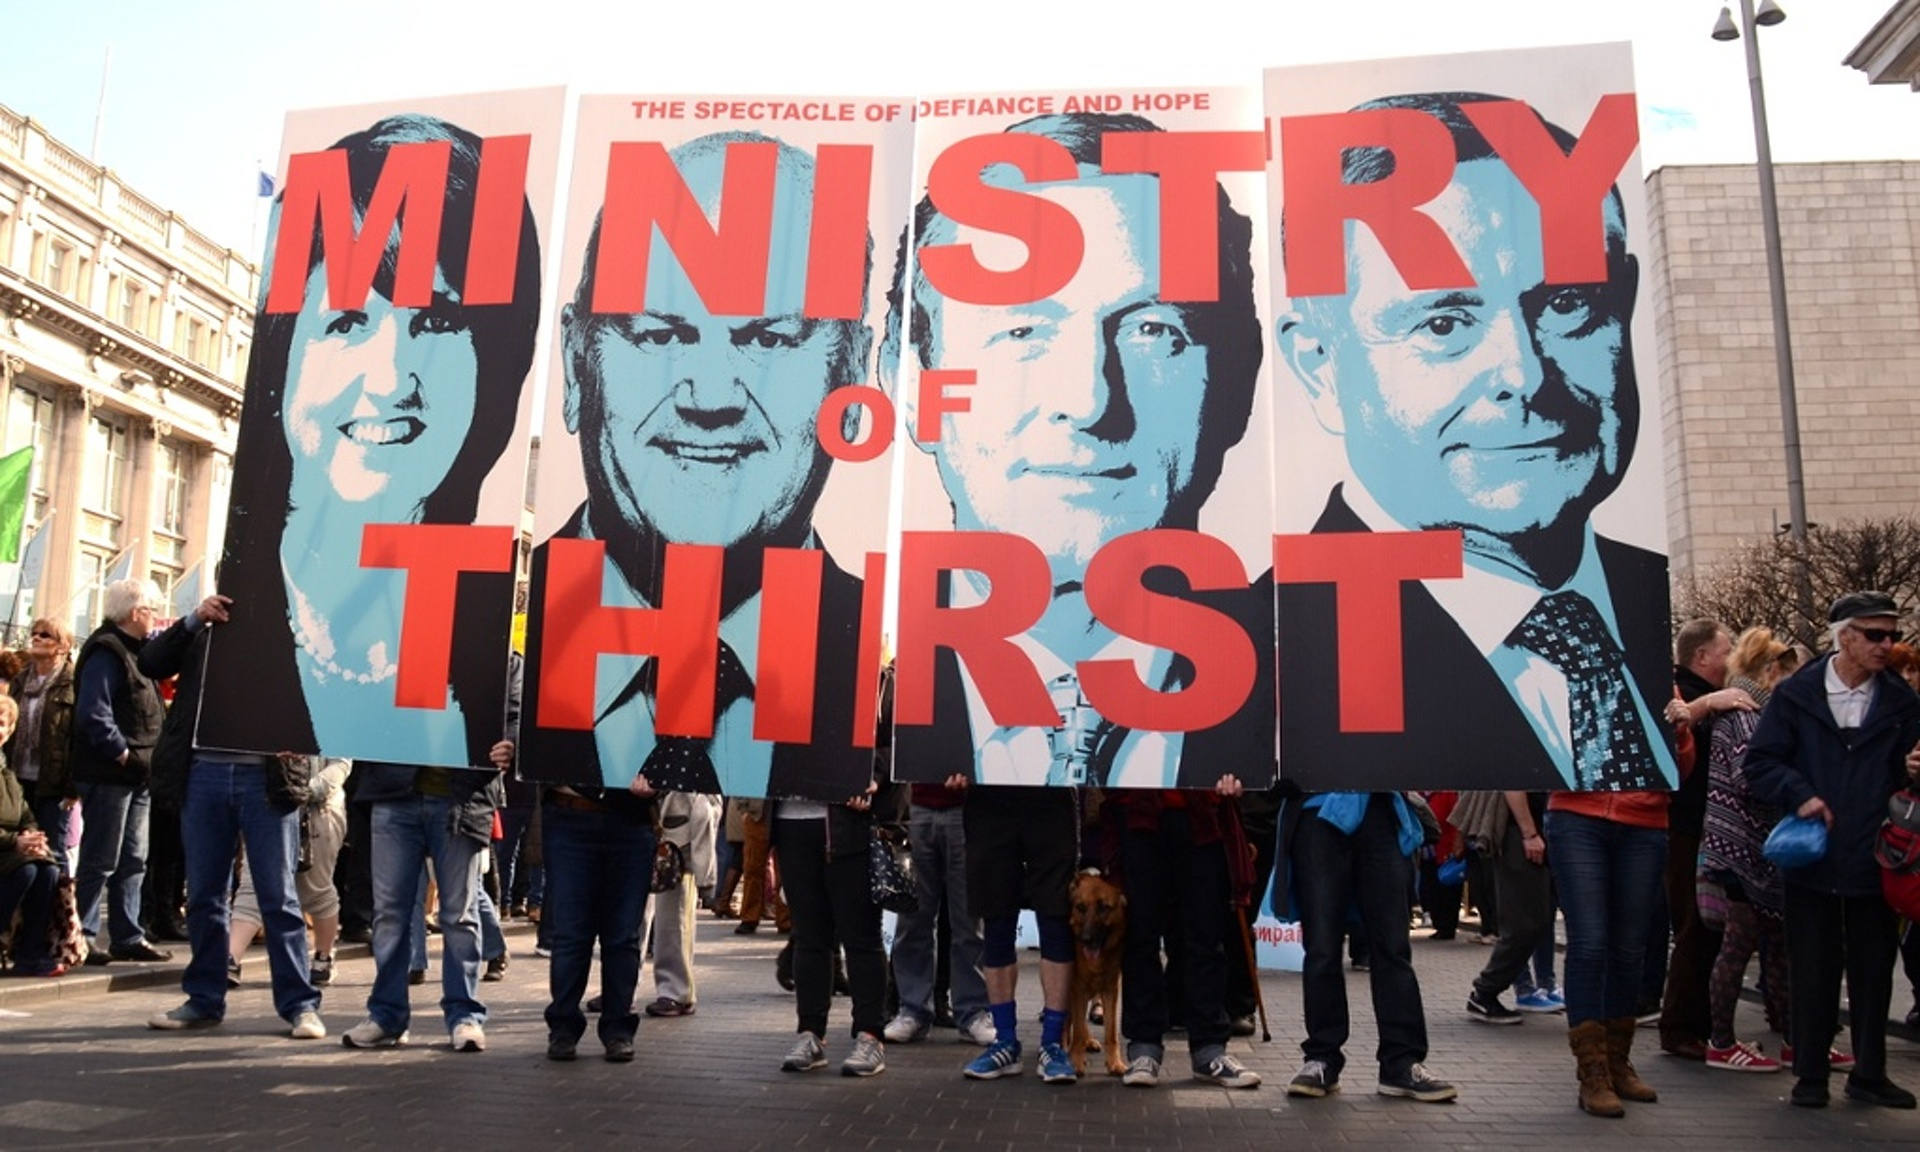 ministry of thirst